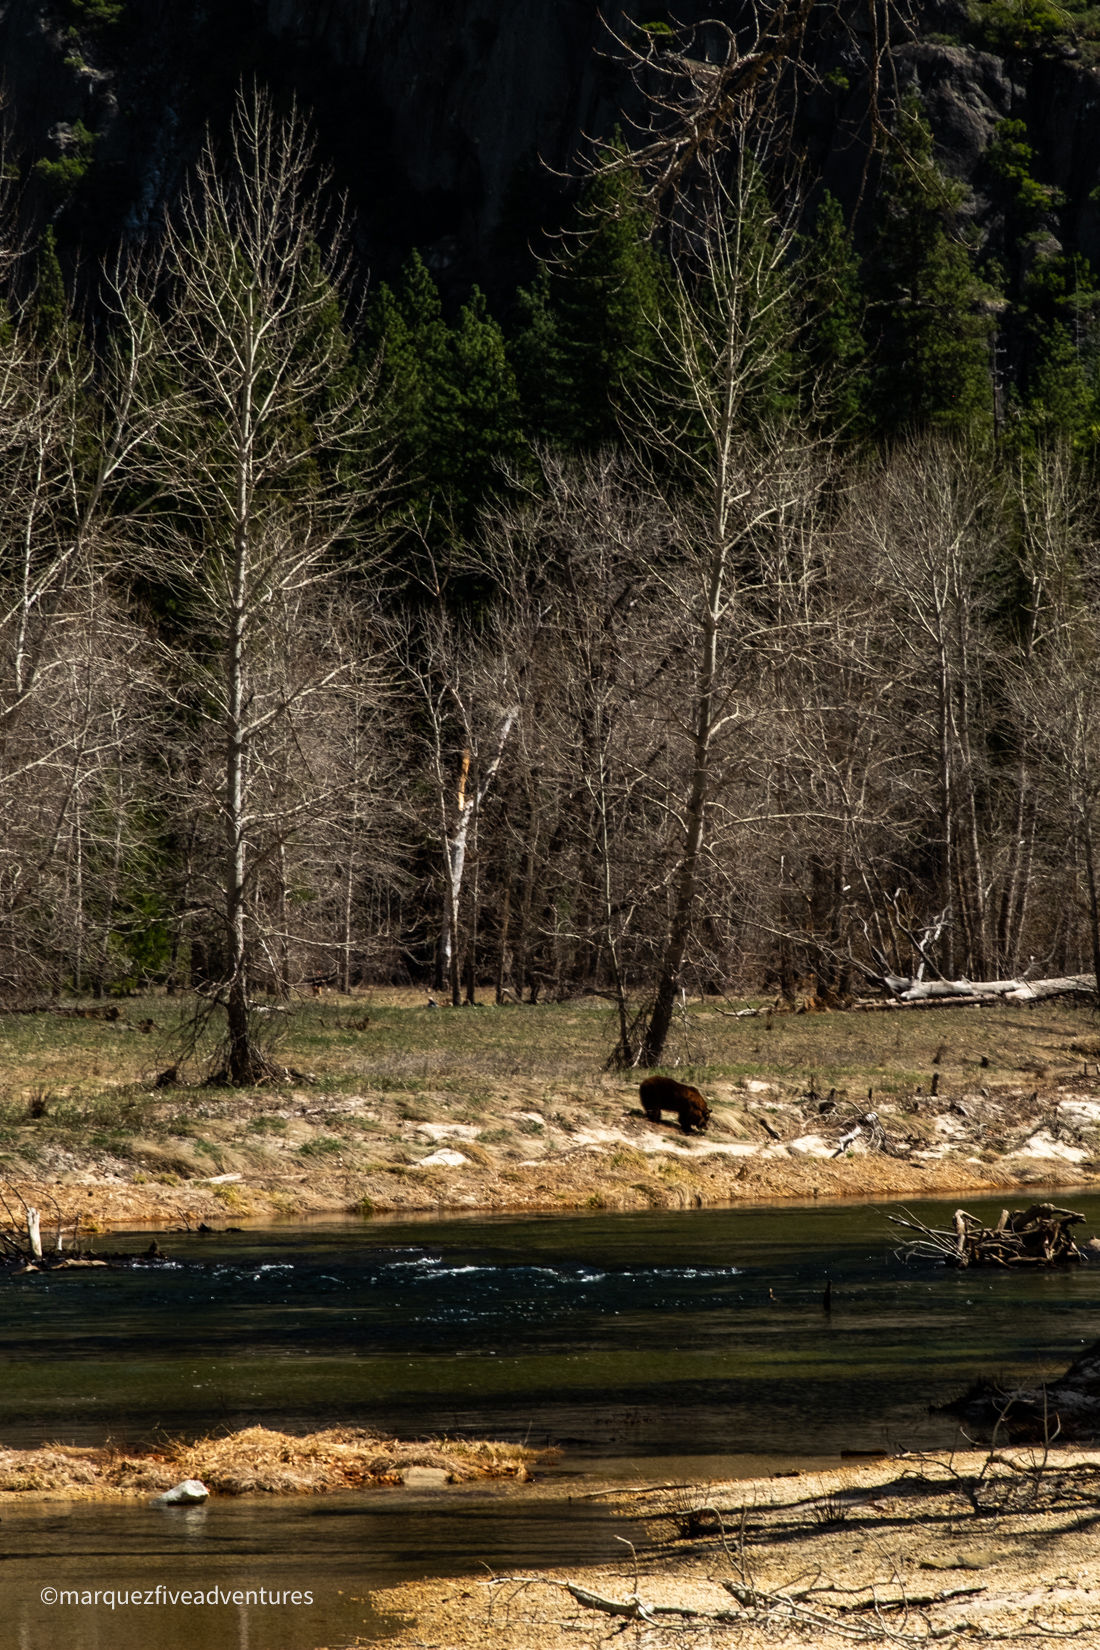 We spotted a bear along the river! Yosemite National Park. California